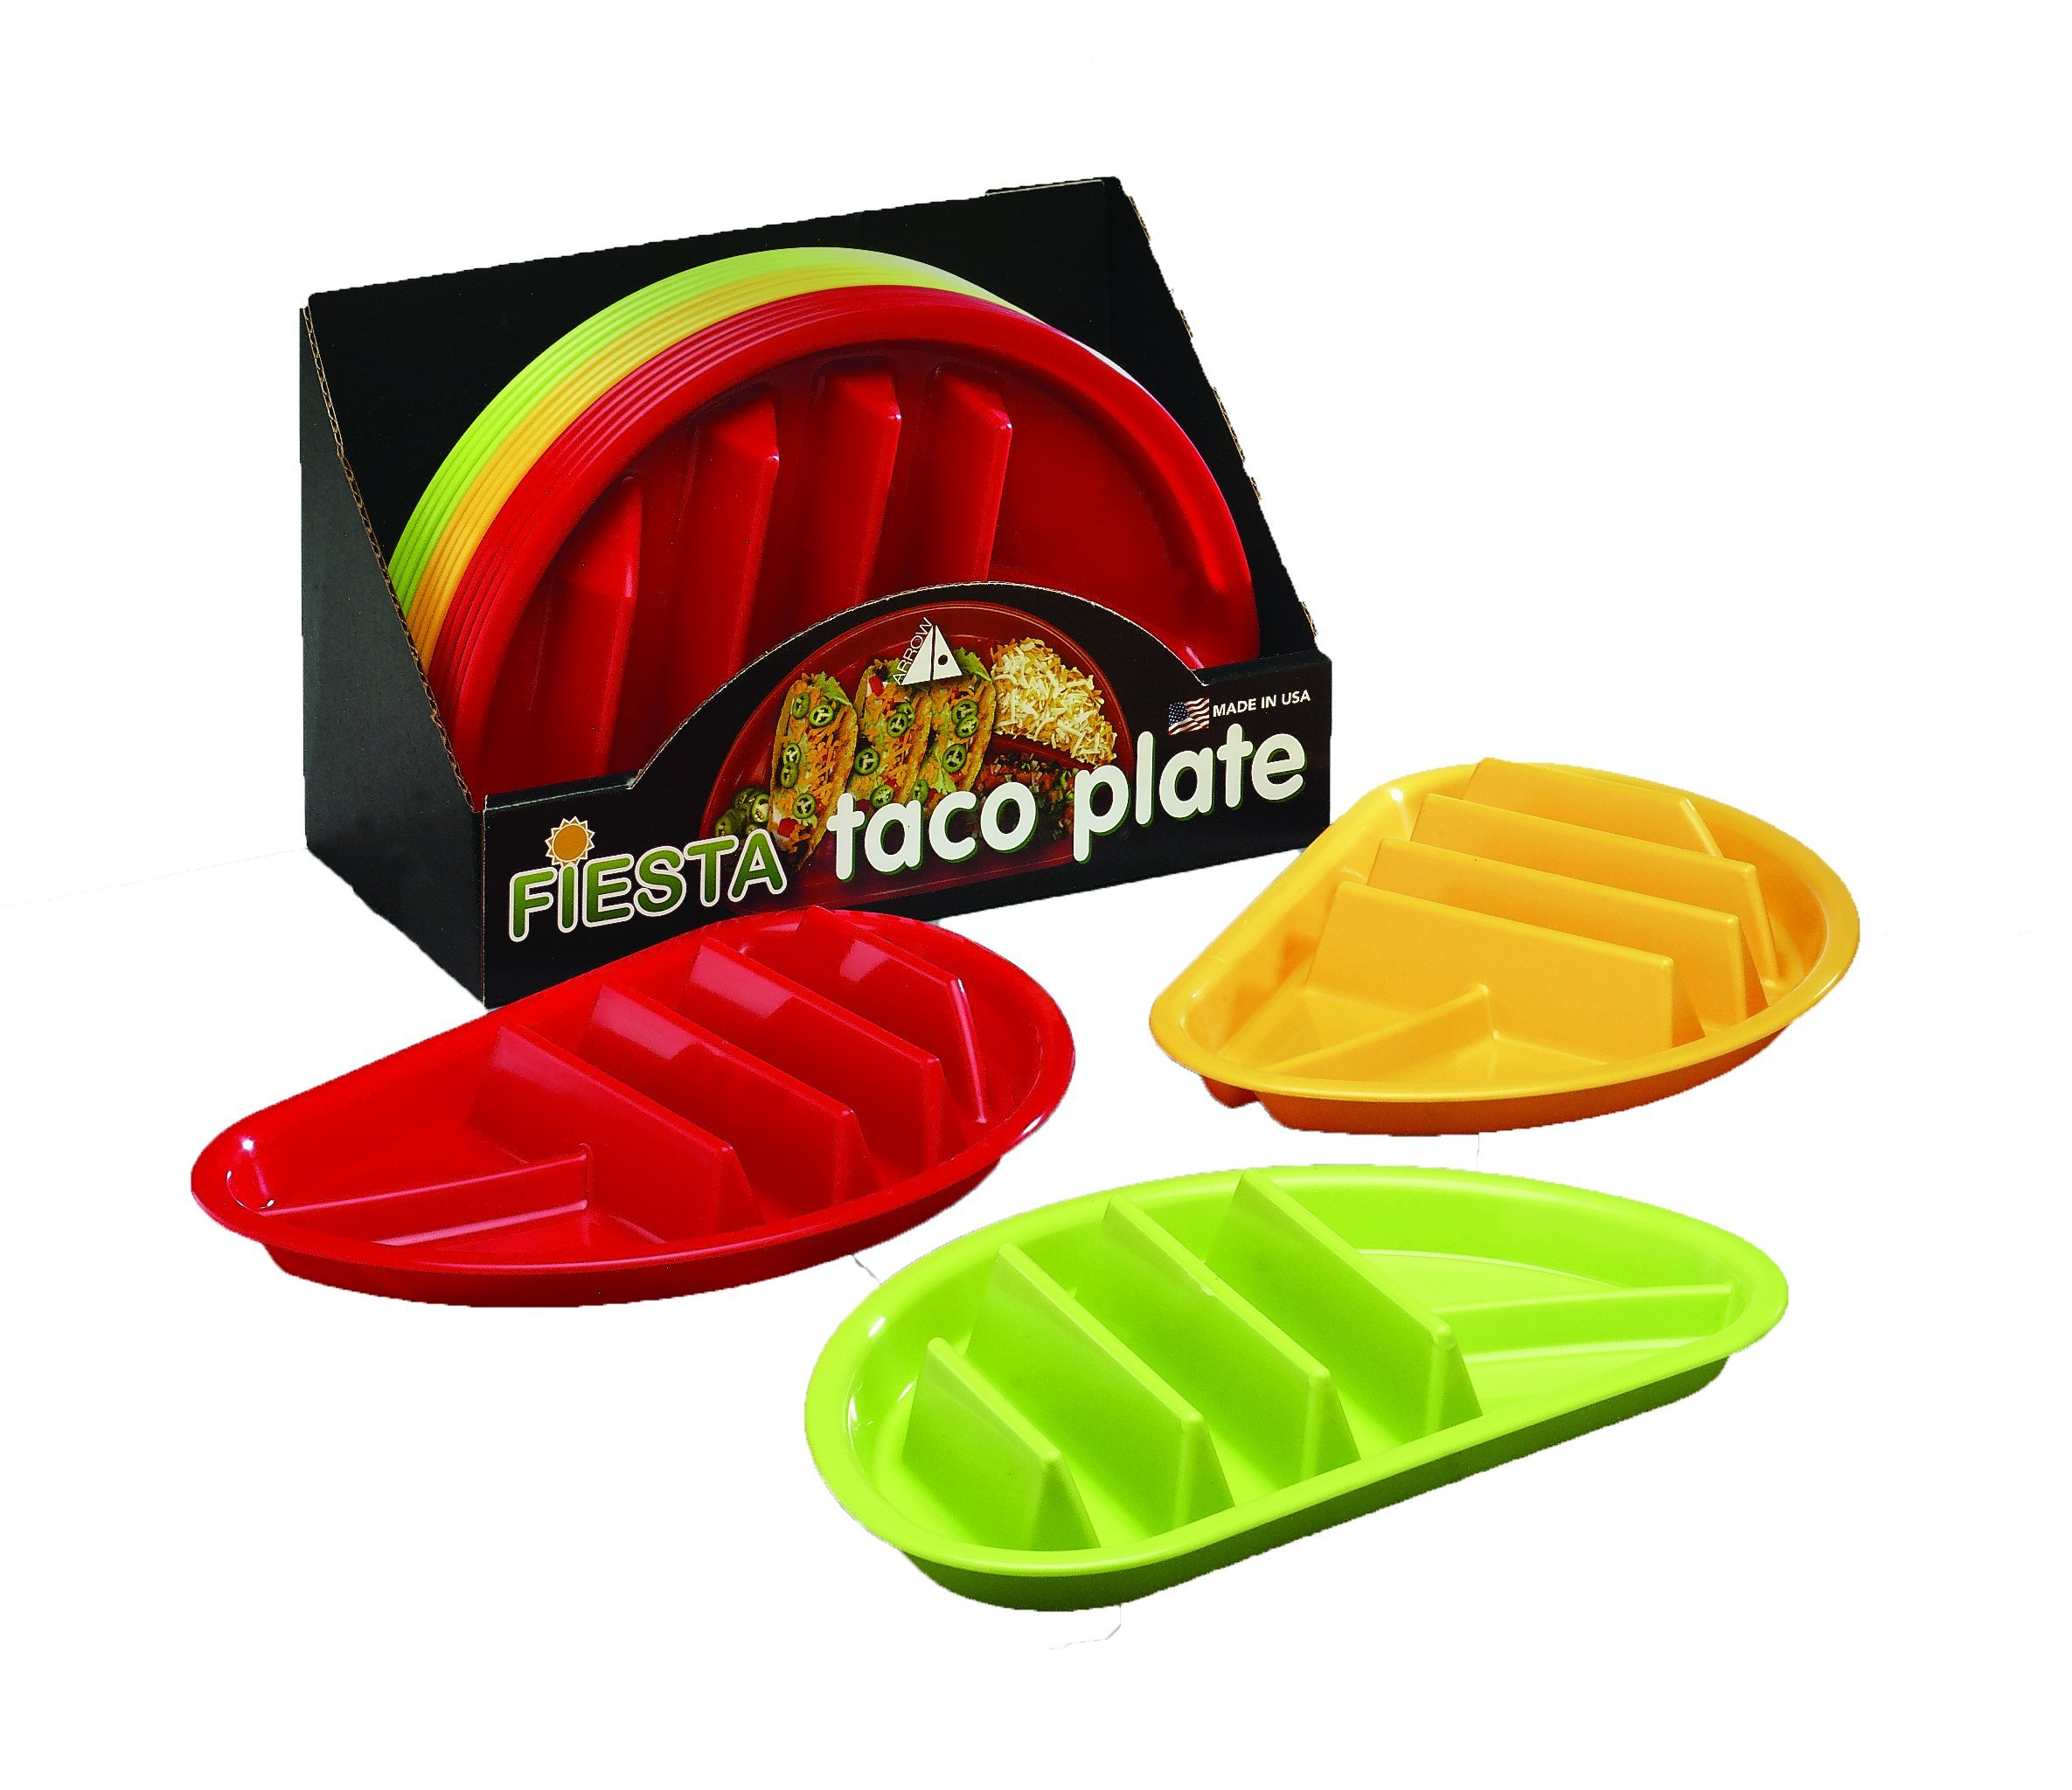 Arrow Home Products 10109 Fiesta Taco Plate, 12-Pack, Assorted Colors